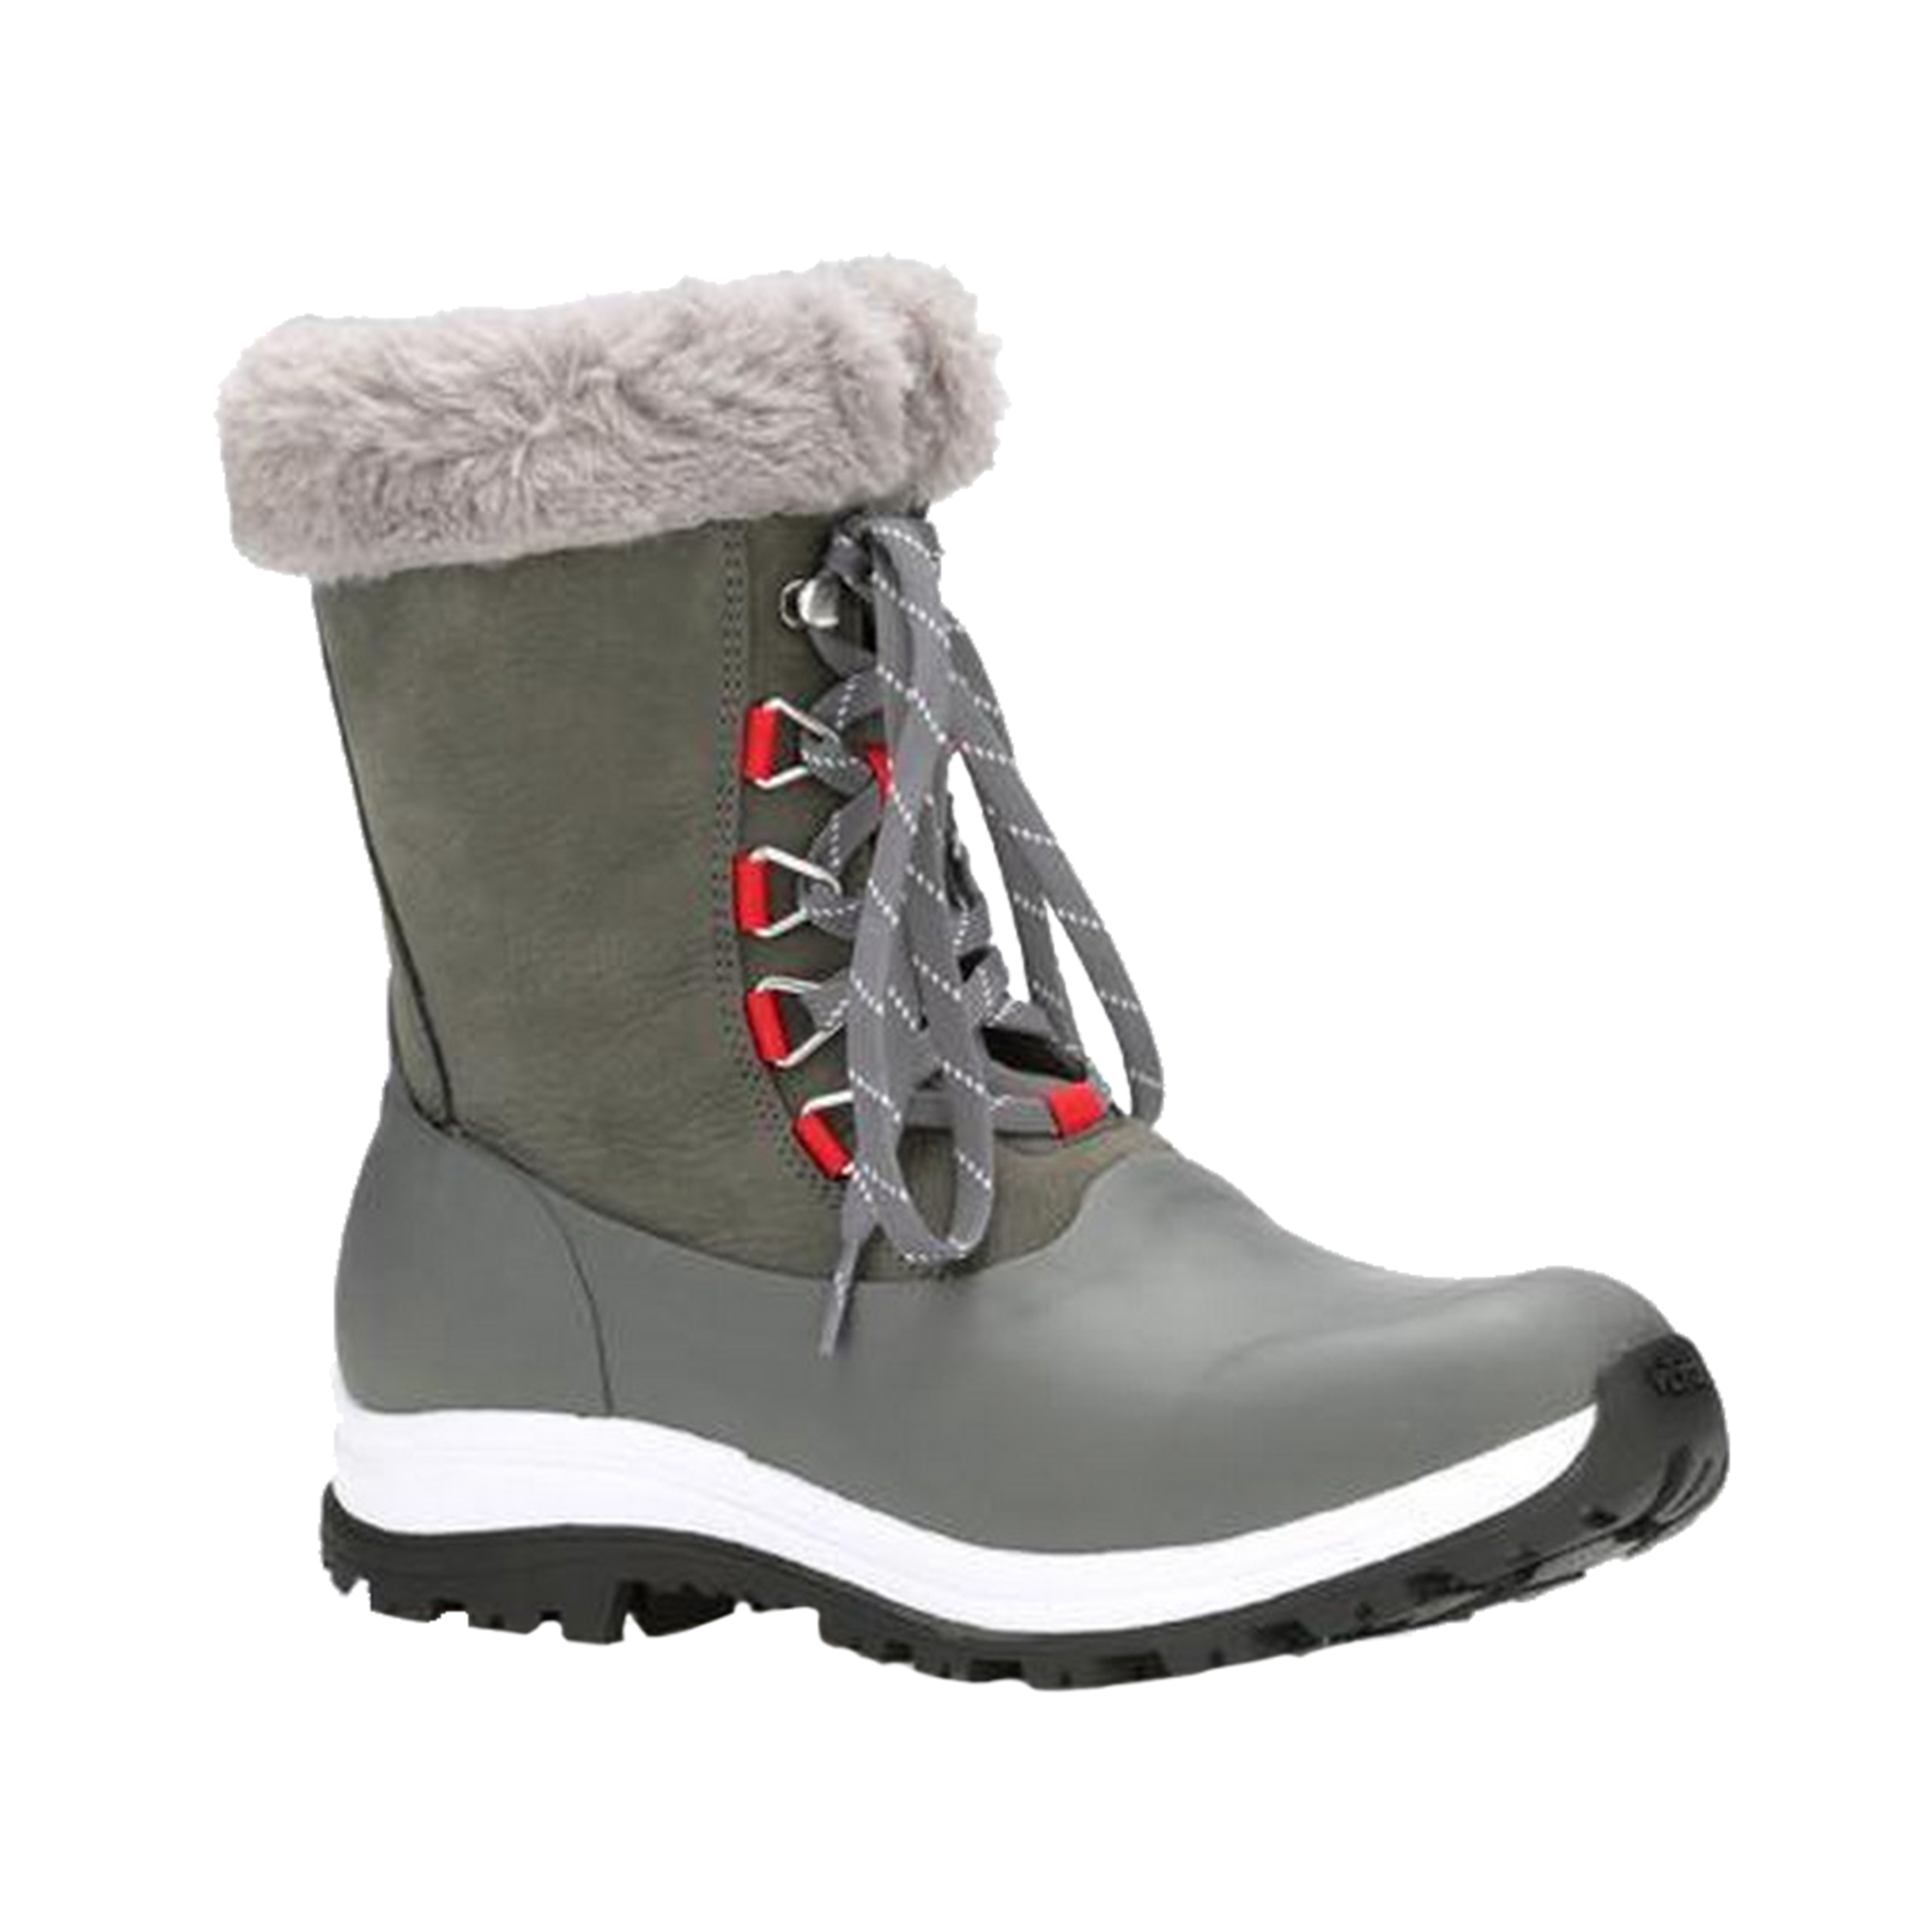 Muck Boots Womensladies Apres Leather Lace Up Mid Boot